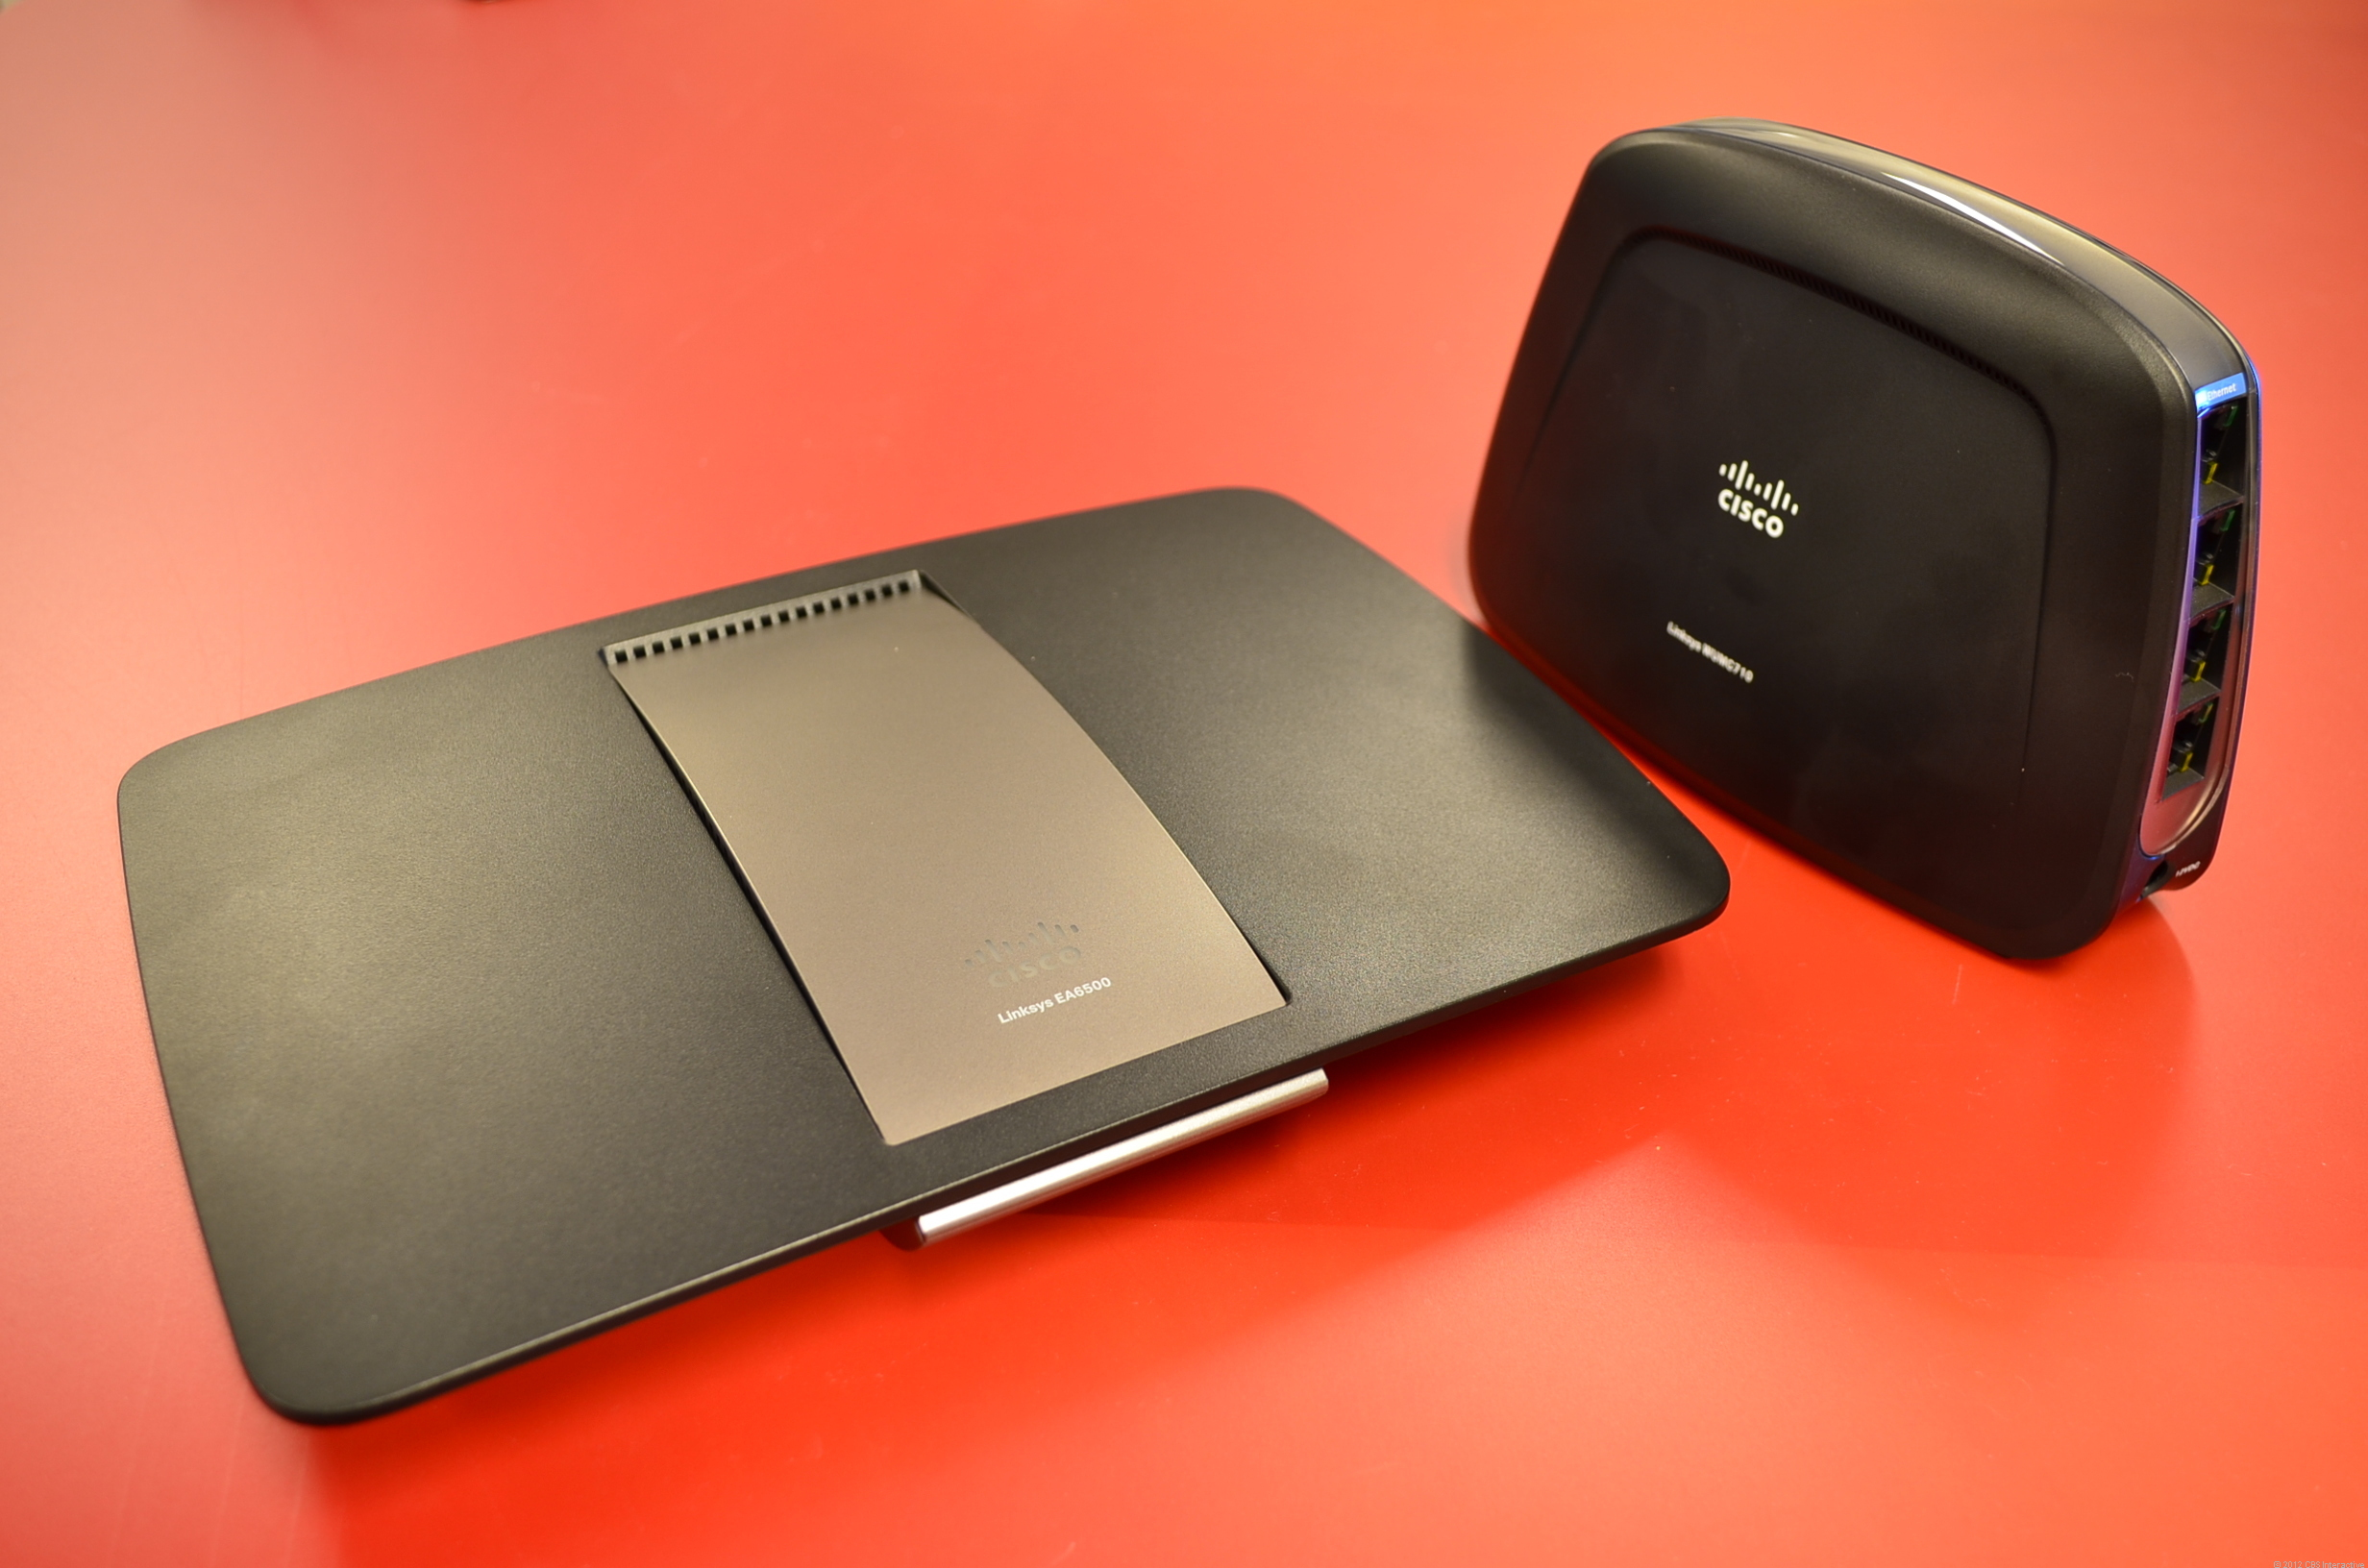 The Linksys EA6500 and the Linksys WUMC710 802.11ac media bridge used for testing